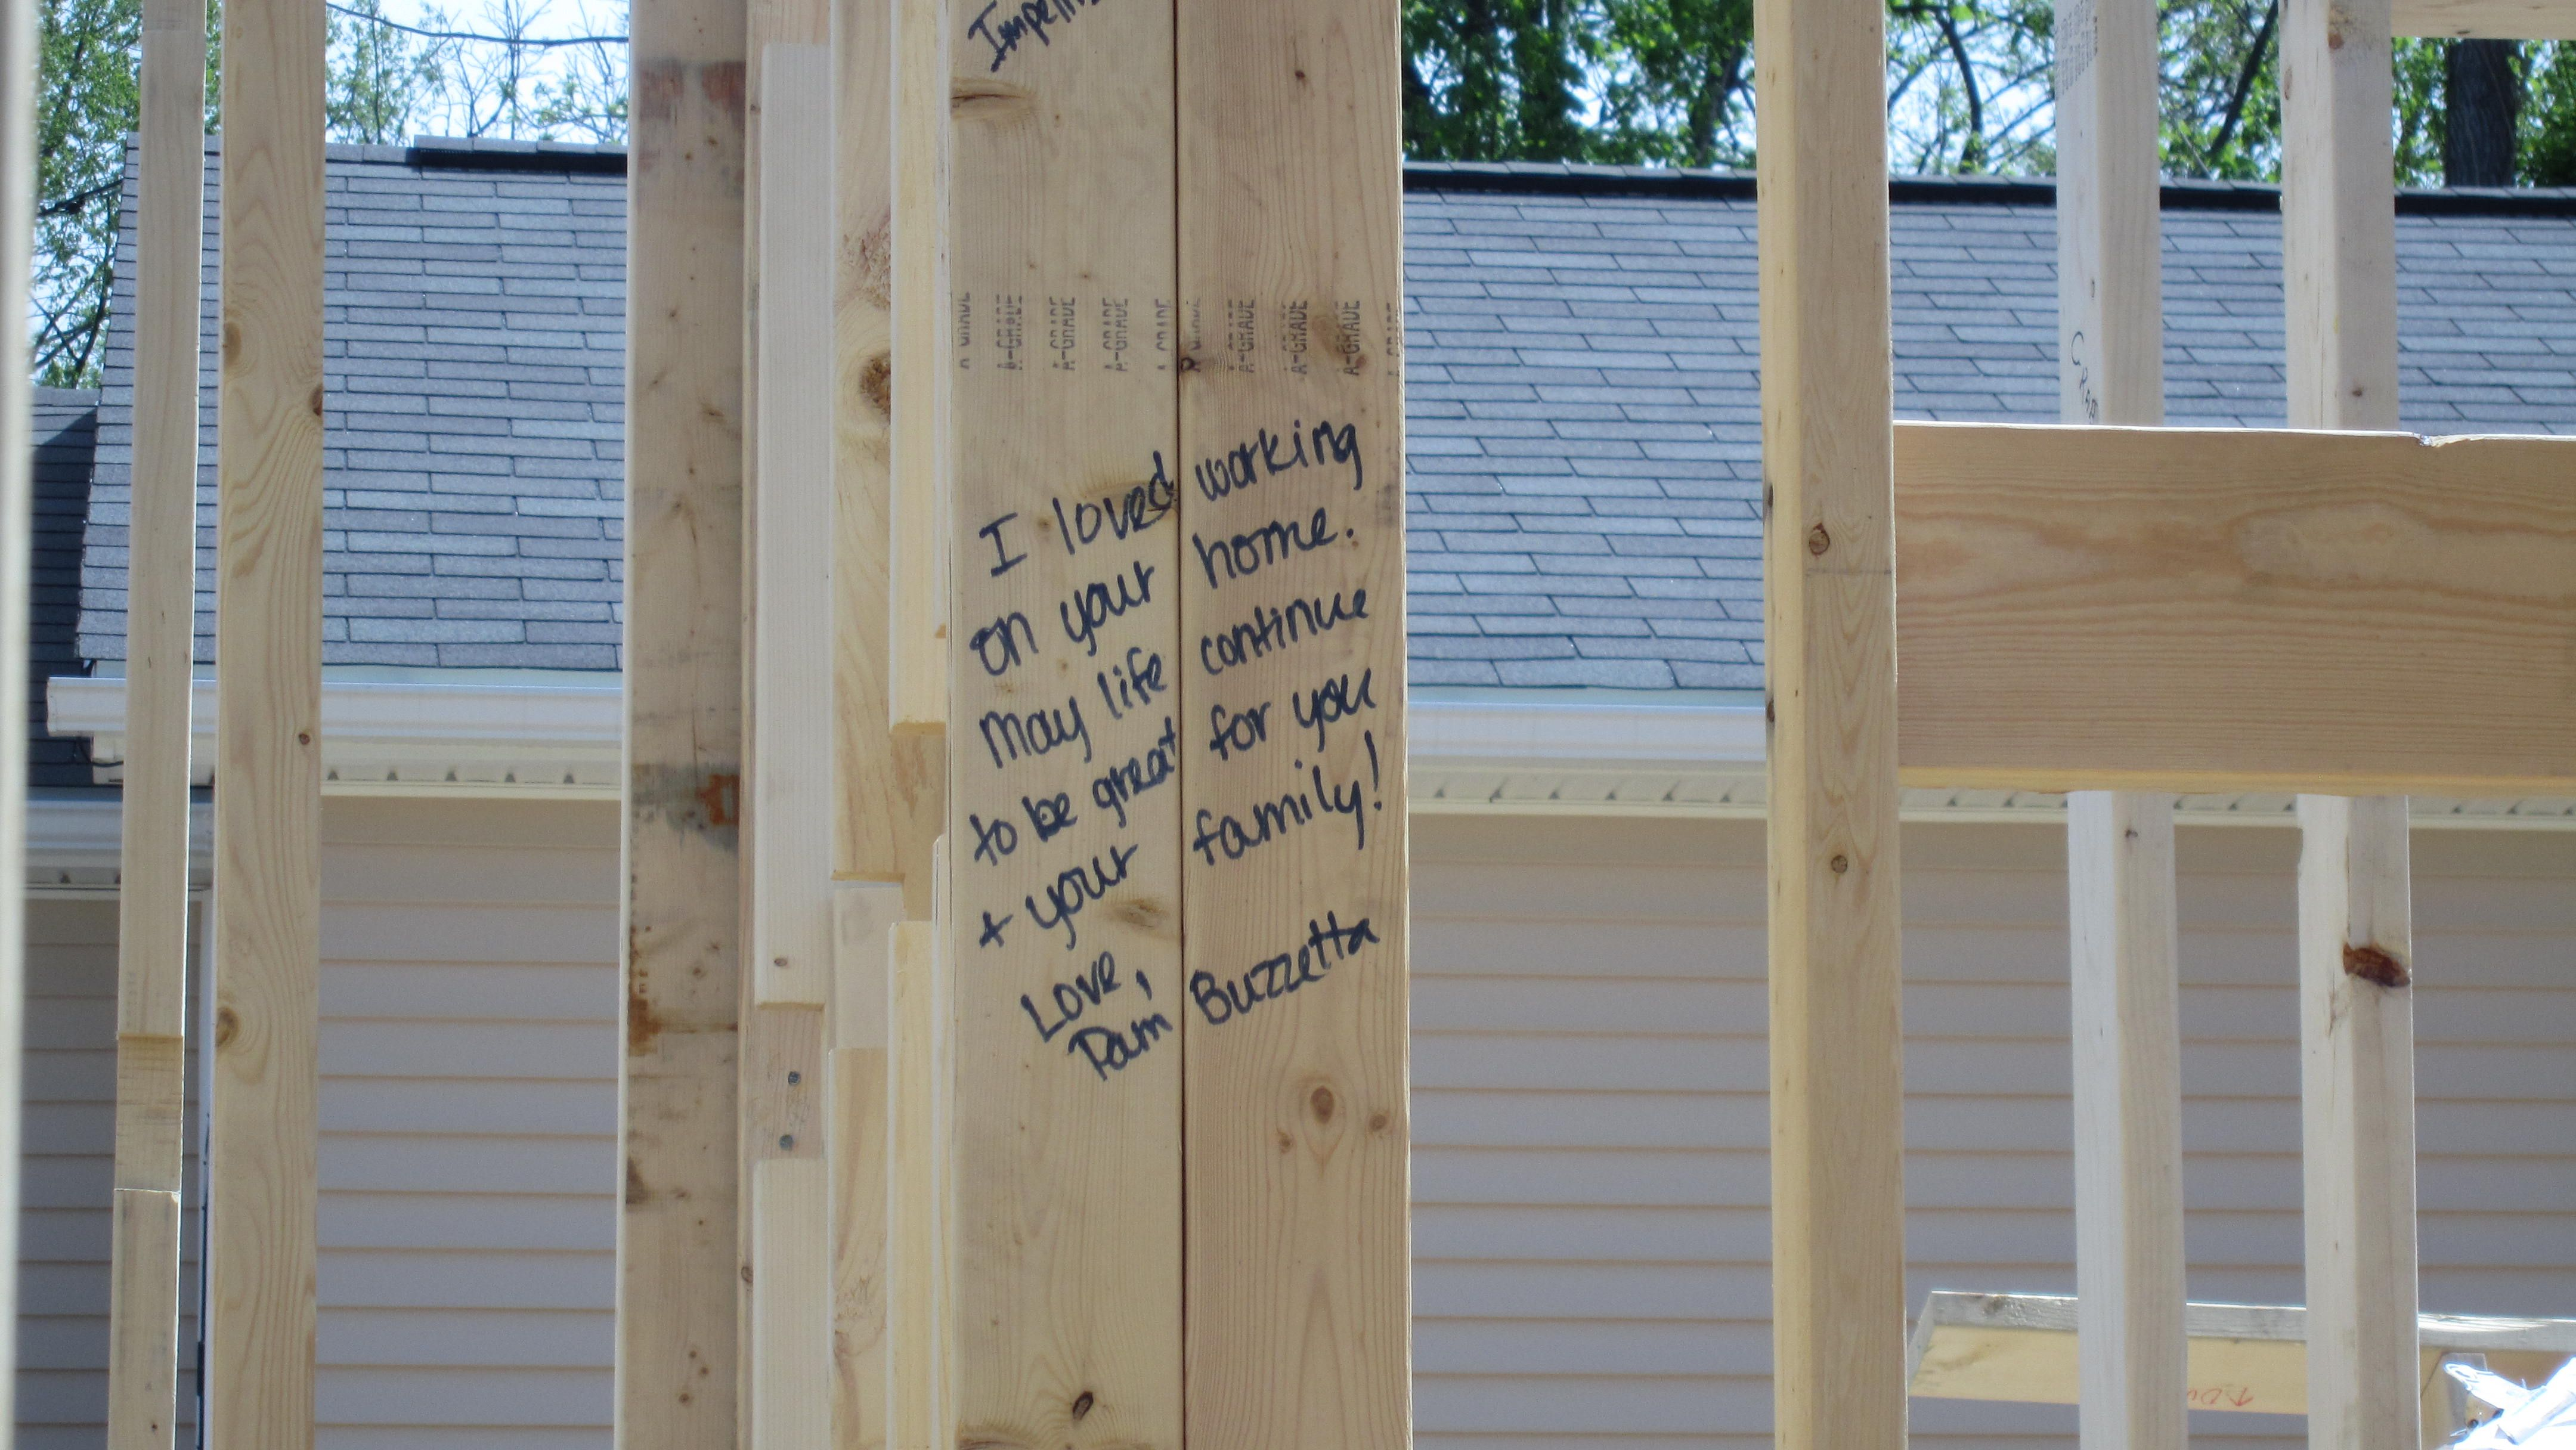 A message to the partner family from a volunteer habitat